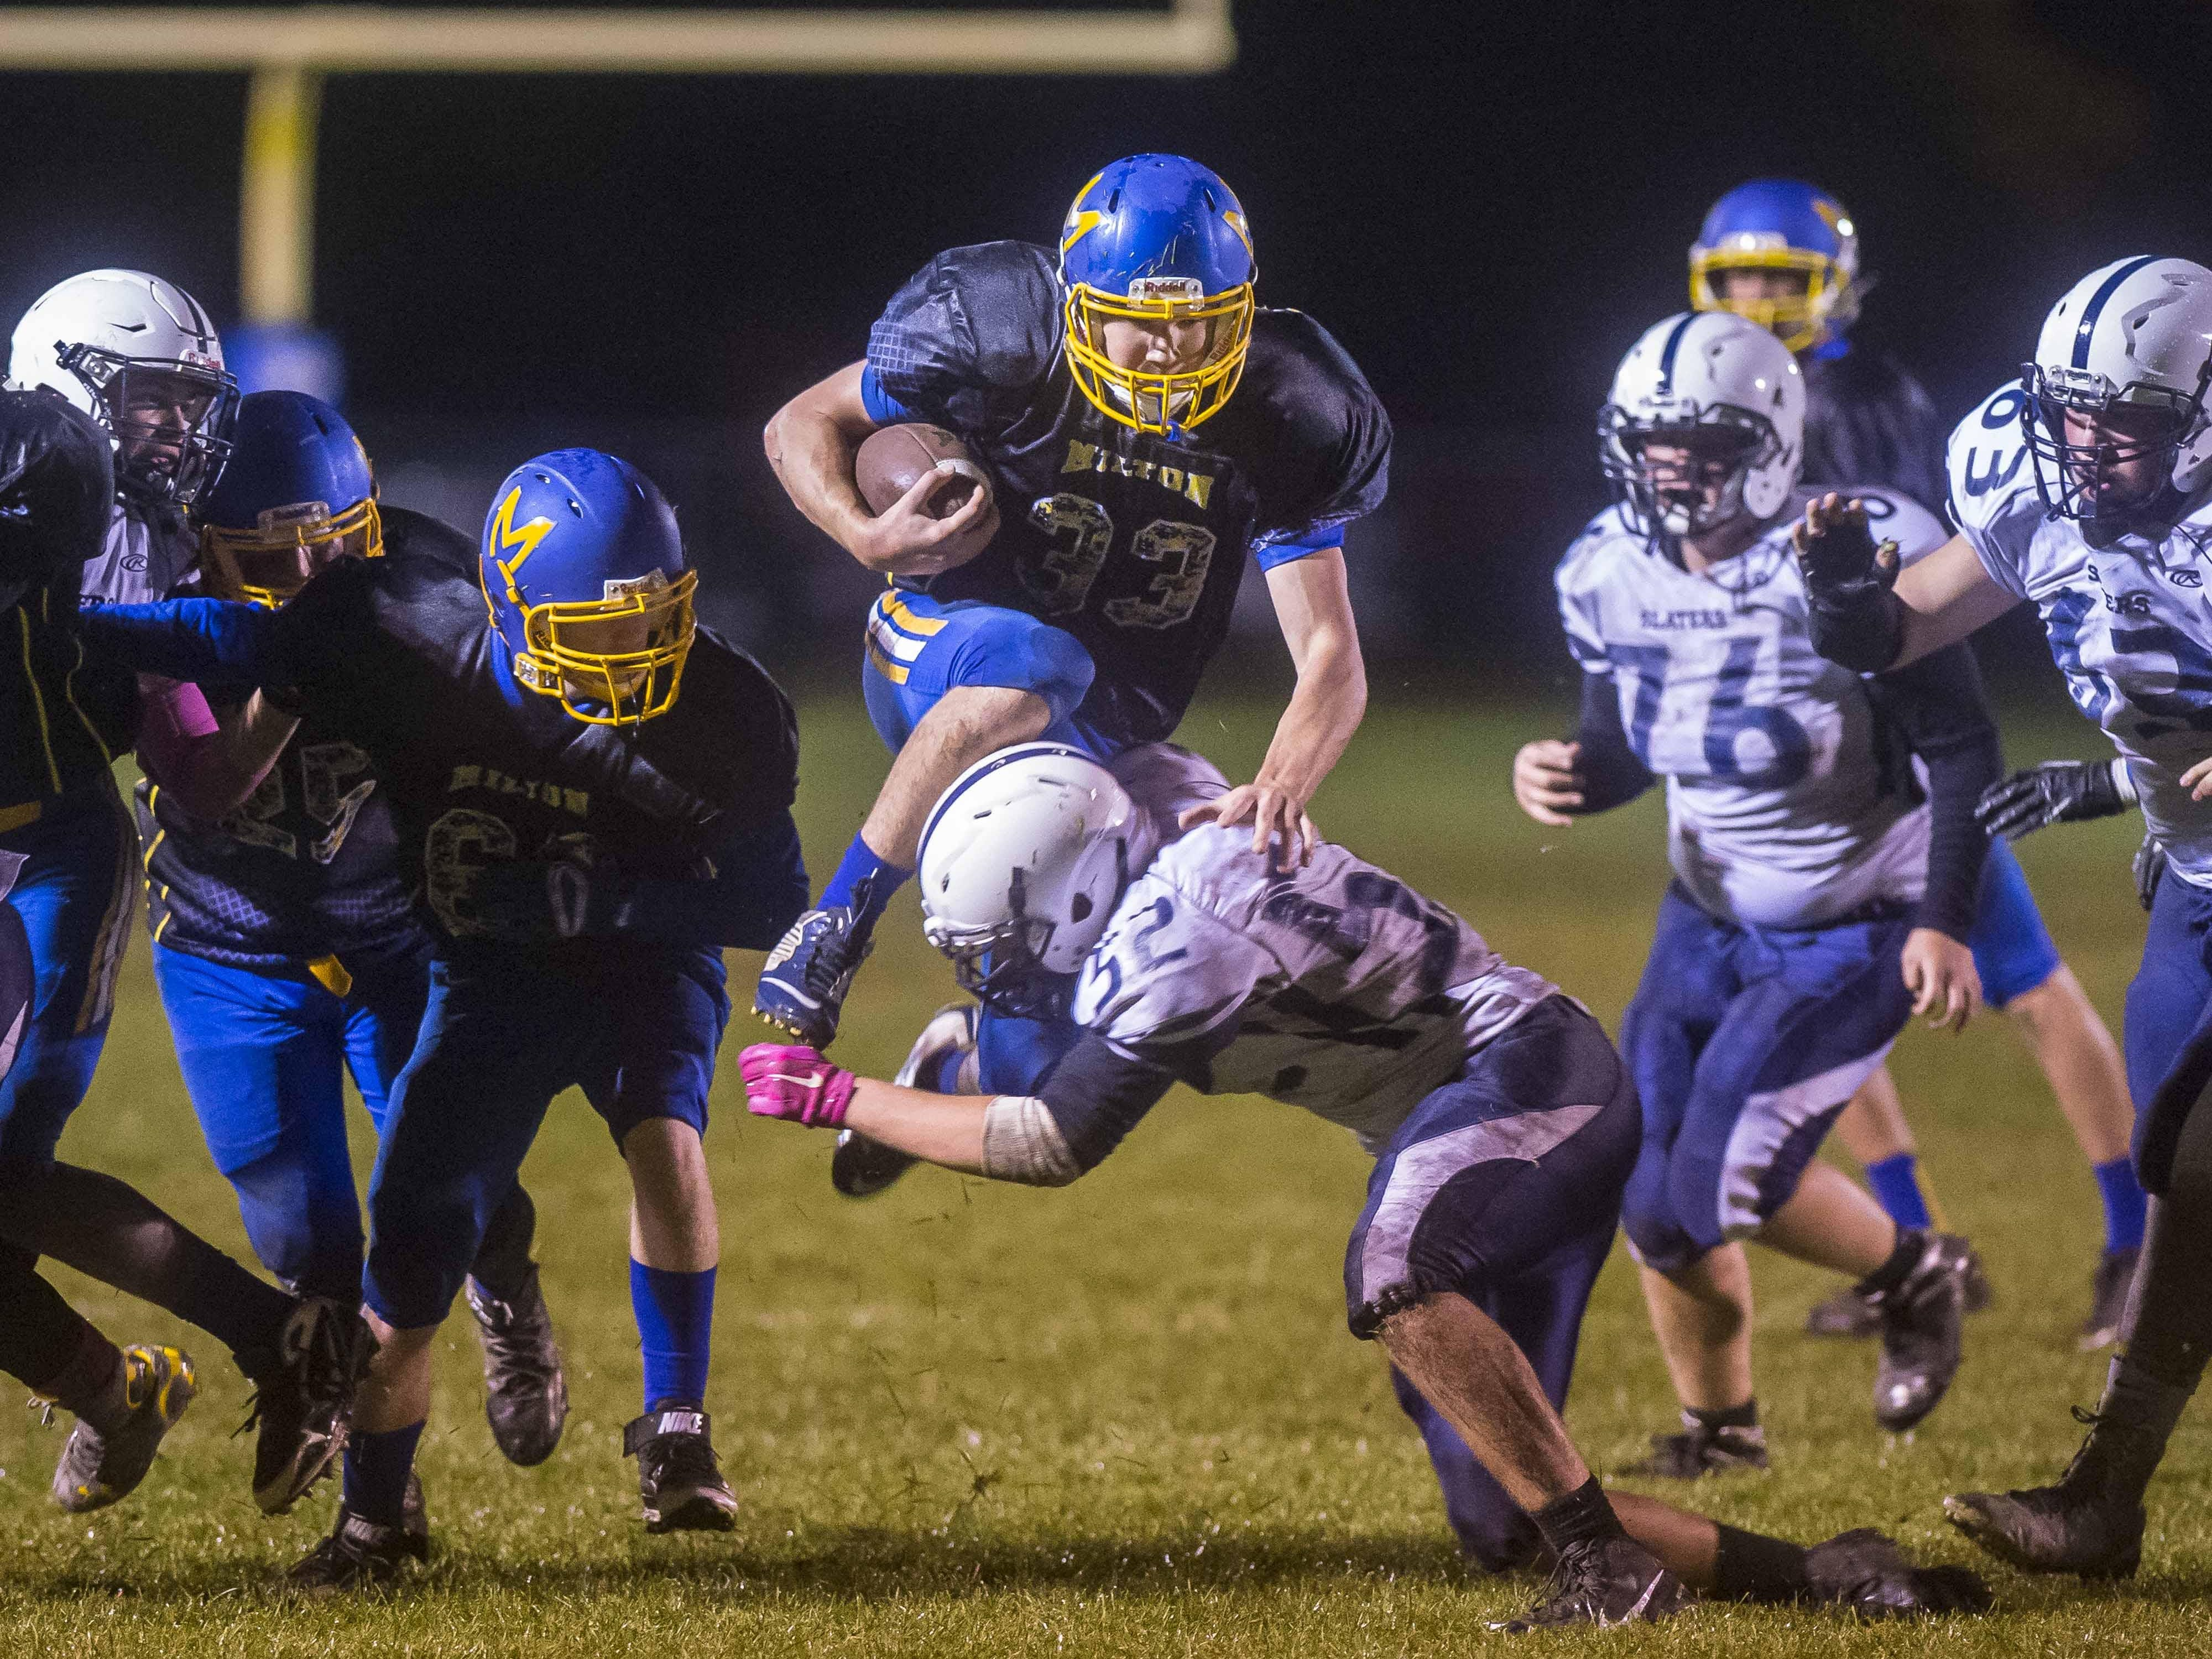 Milton's Ian Kandzior leaps over Fair Haven's Jake Stoodley during Friday night's game in Milton. The Yellowjackets won 38-20.